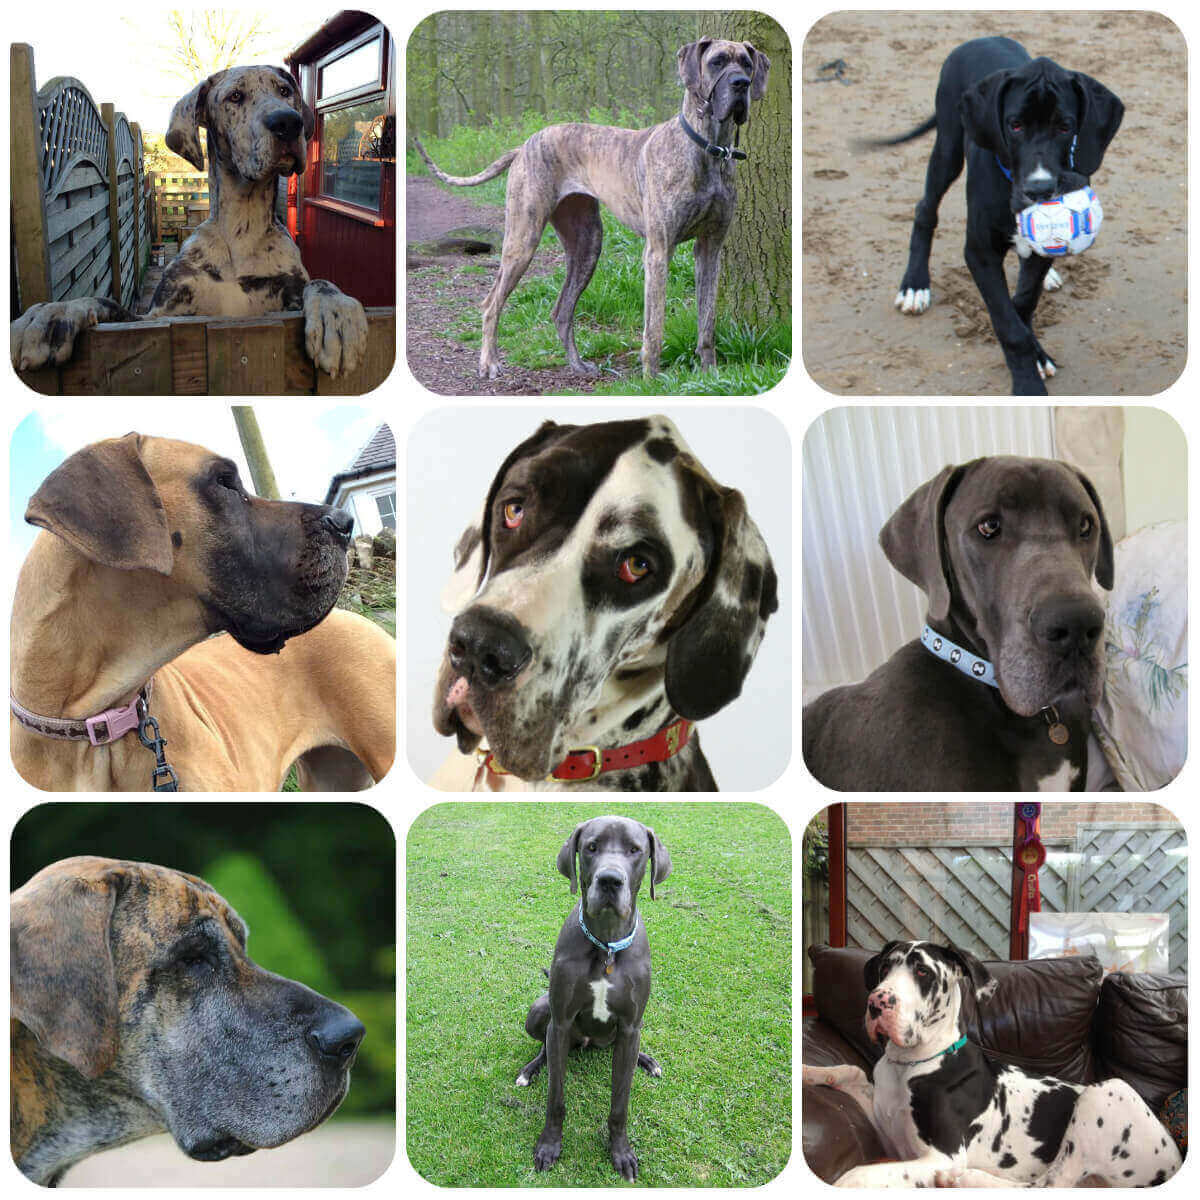 A collage of great dane dogs and puppies, part of BorrowMyDoggy's guide to dog breeds.